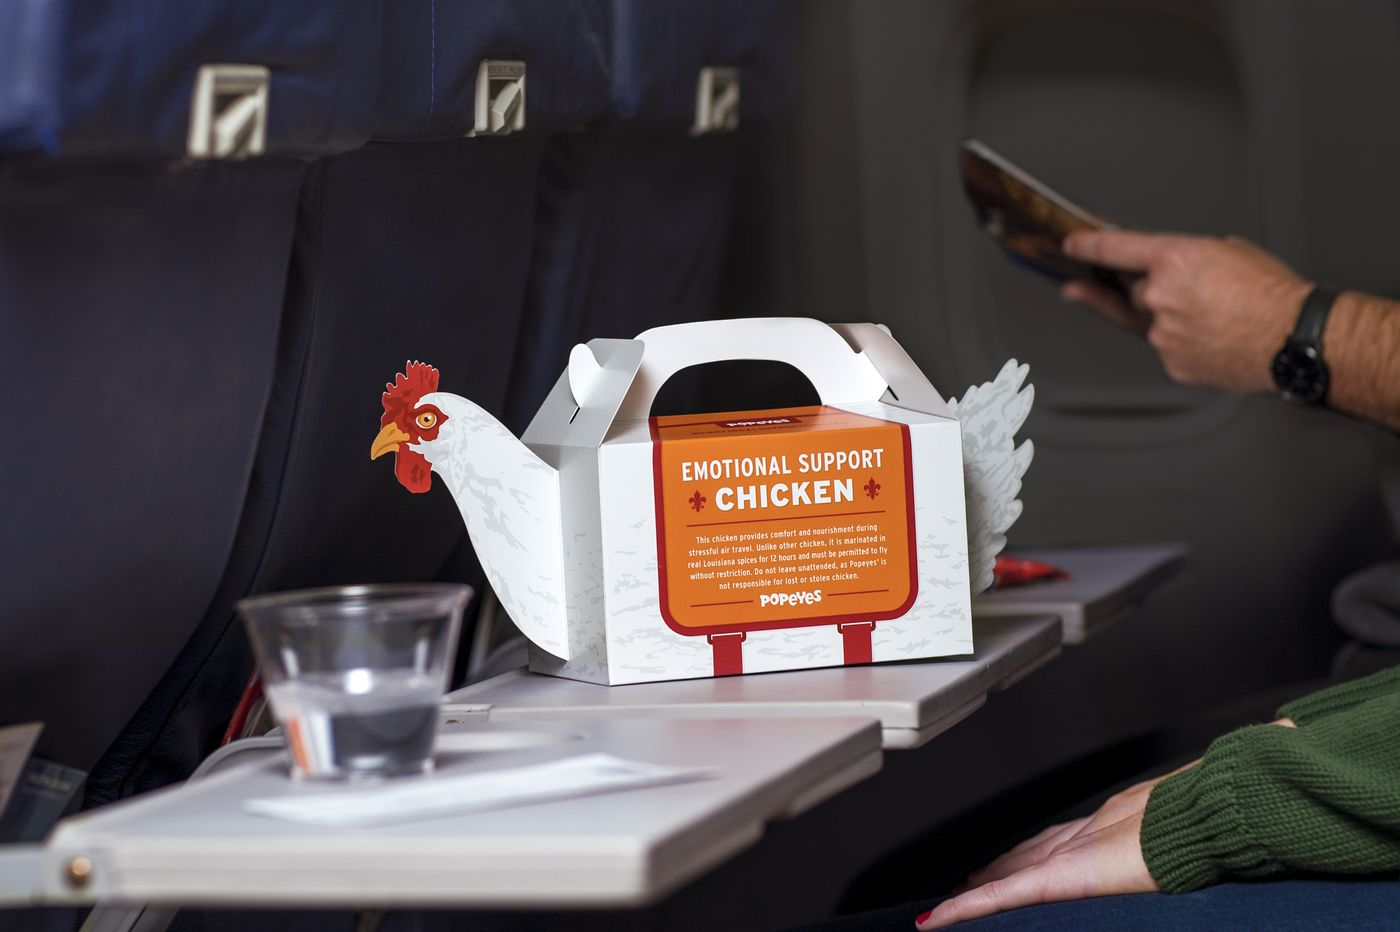 Attention, frequent fryers: Emotional support chickens take wing at PHL